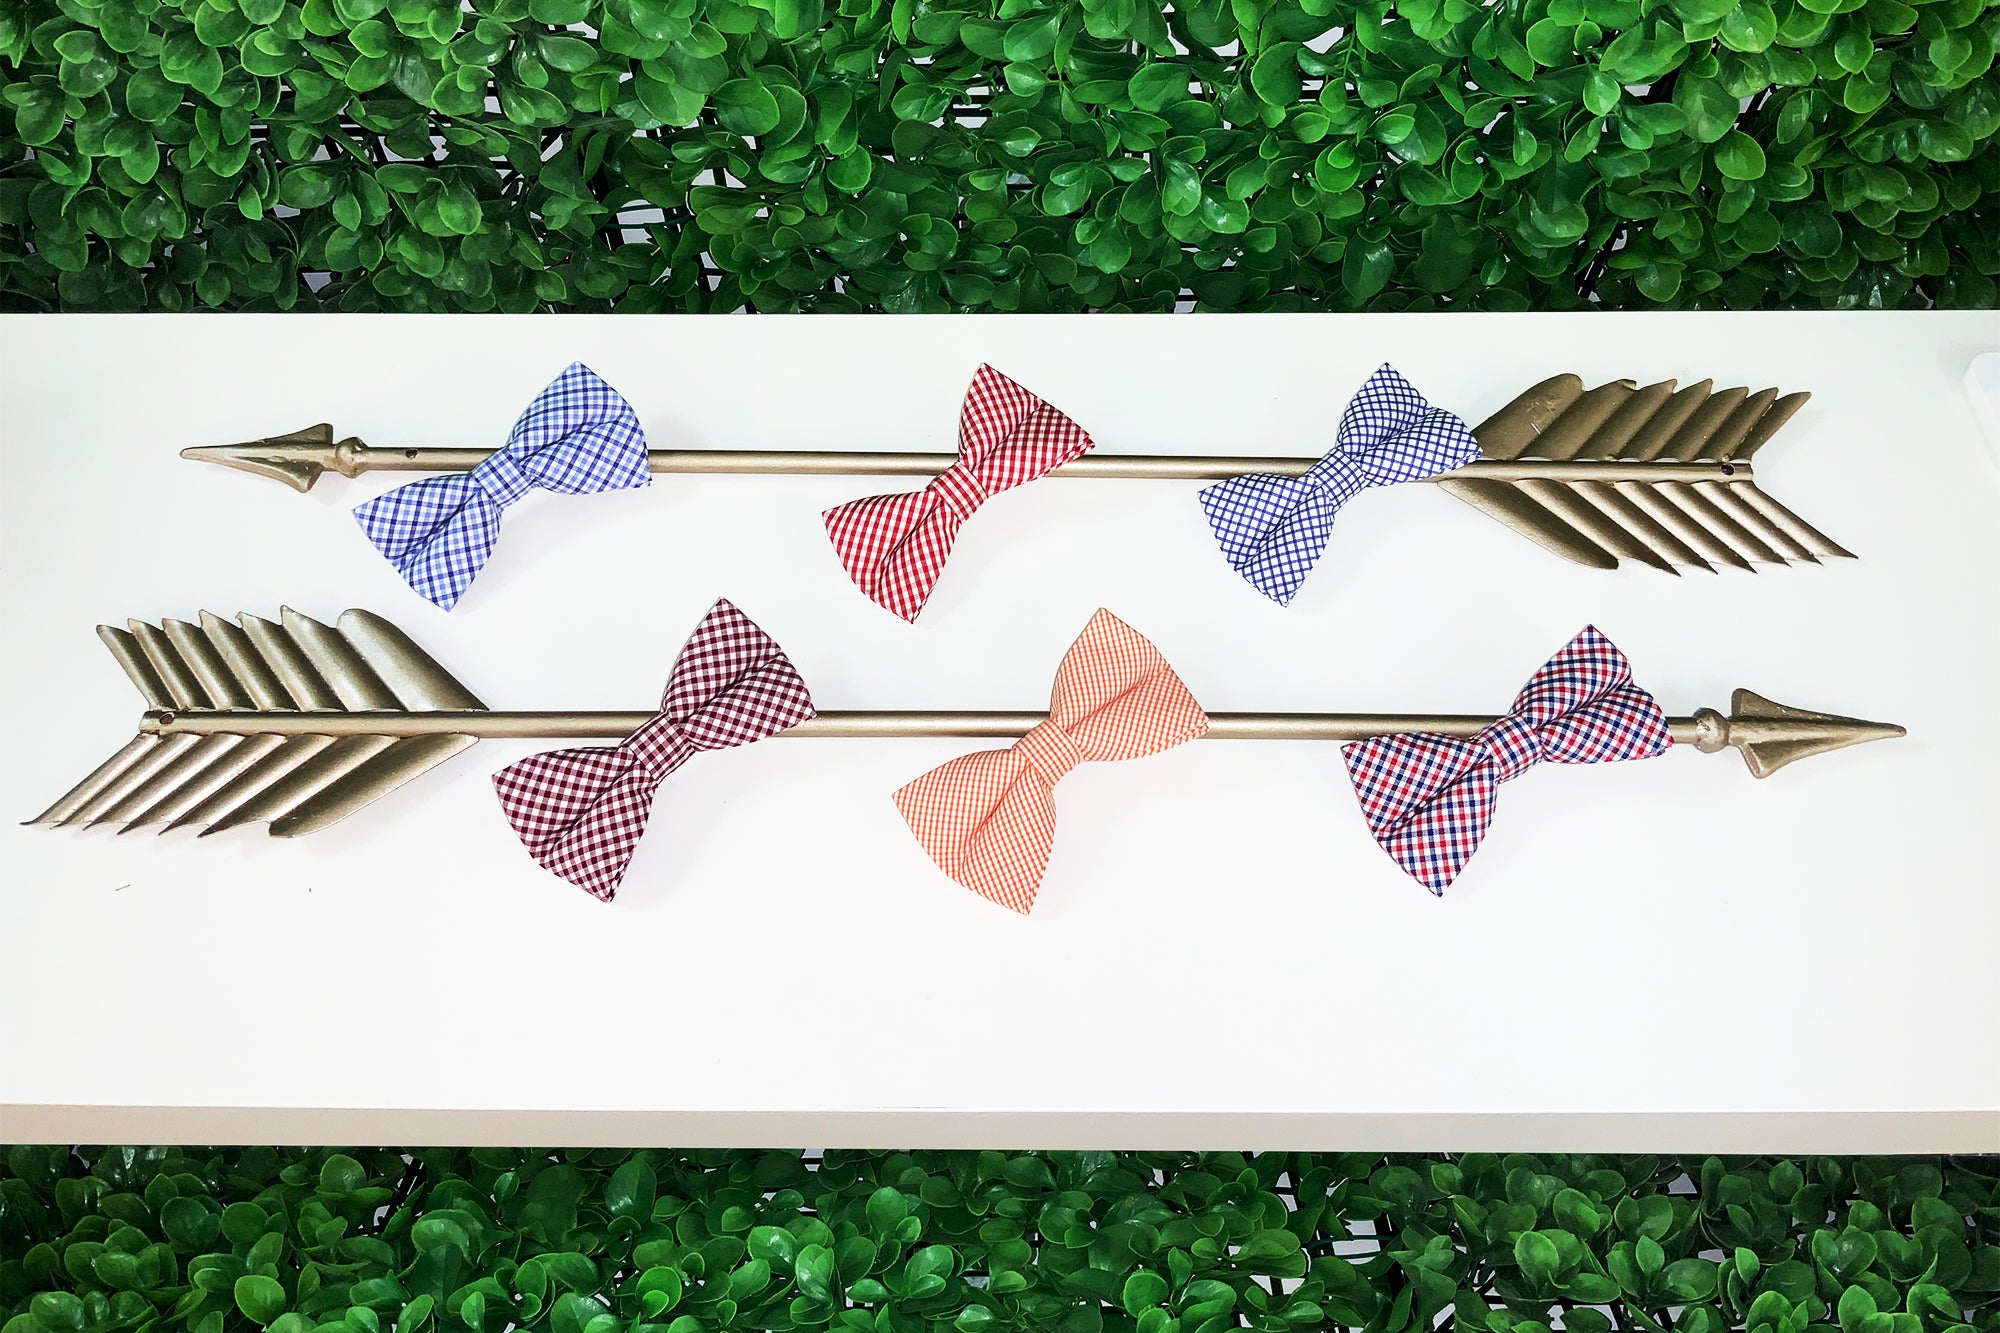 All variations of our Bowenties bow ties in the Fall 2019 Lowcountry Collection.